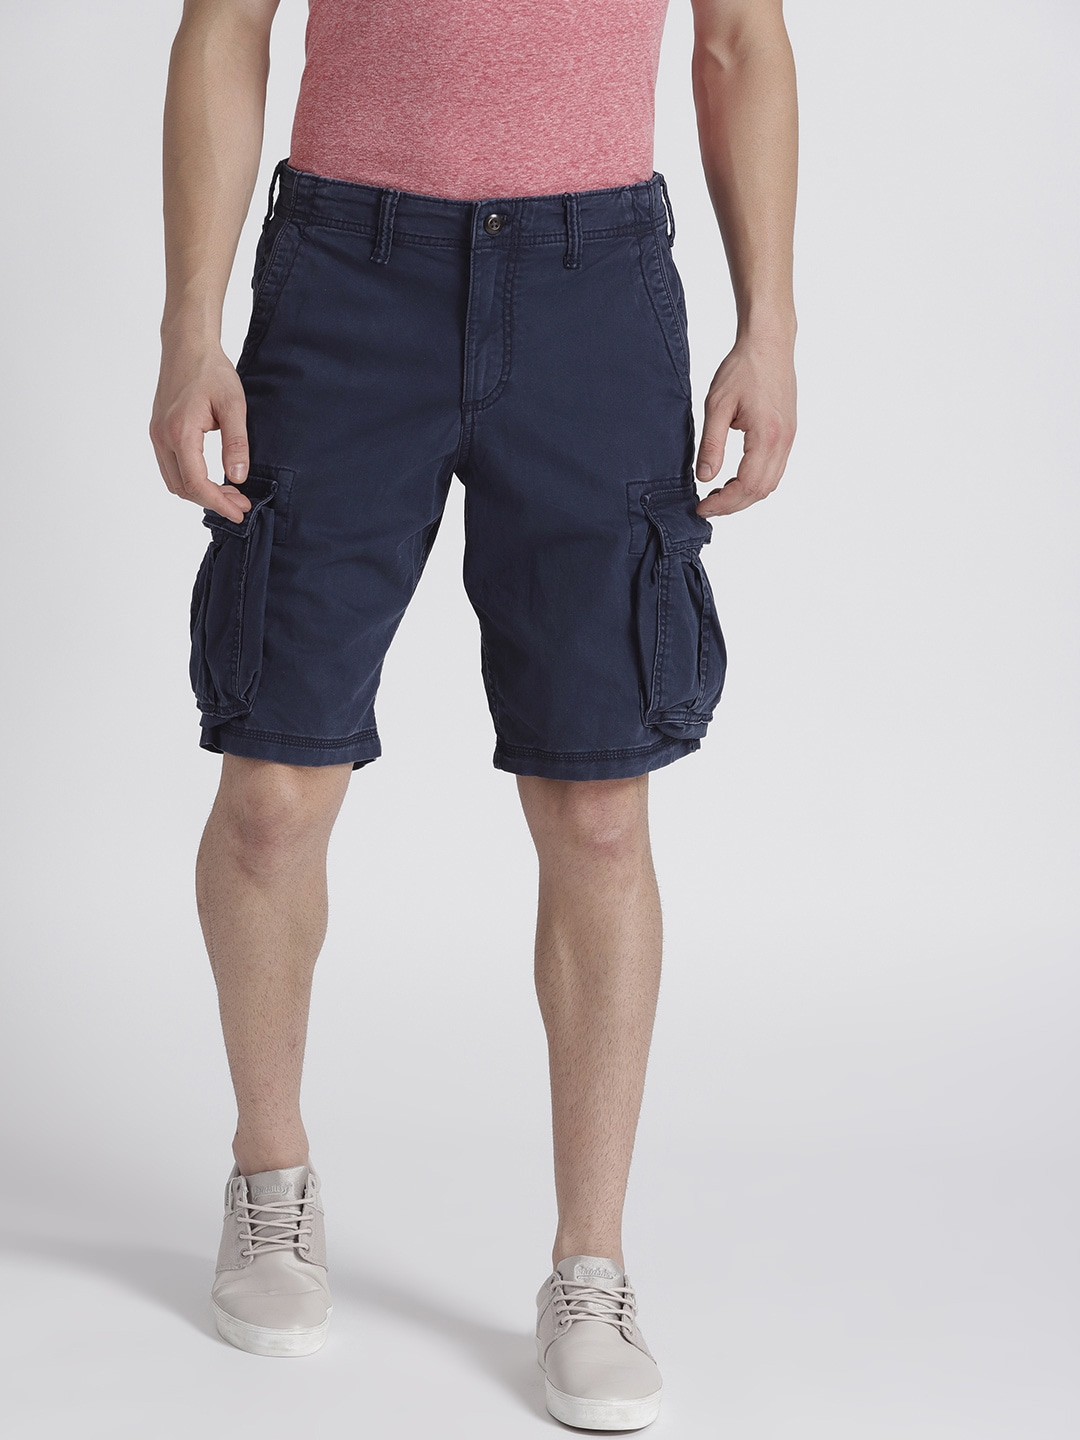 f648252633 Cargo Shorts - Buy Cargo Shorts for Men & Women online in India - Myntra